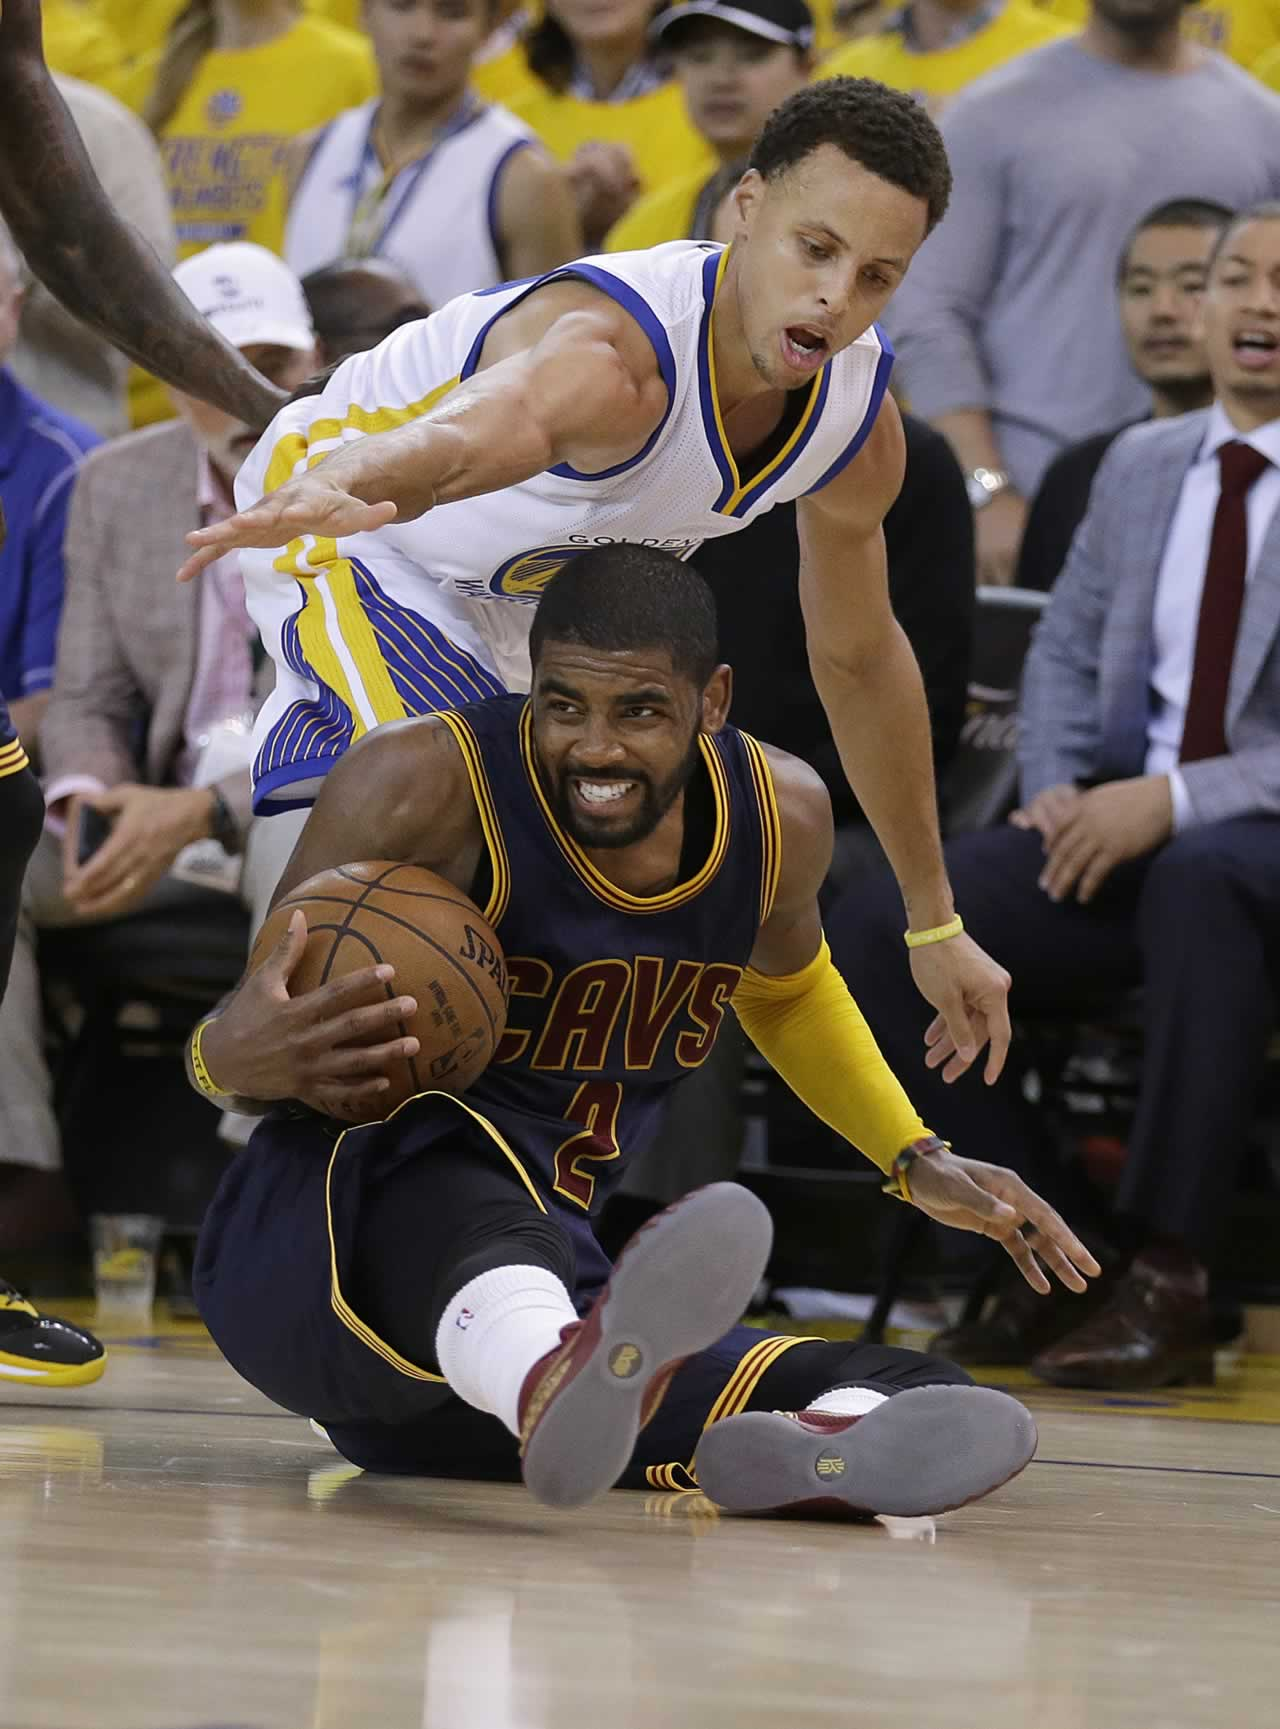 <div class='meta'><div class='origin-logo' data-origin='none'></div><span class='caption-text' data-credit='AP Photo/Ben Margot'>Cavaliers guard Kyrie Irving is guarded by Warriors guard Stephen Curry during Game 1 of basketball's NBA Finals in Oakland, Calif., Thursday, June 4, 2015.</span></div>